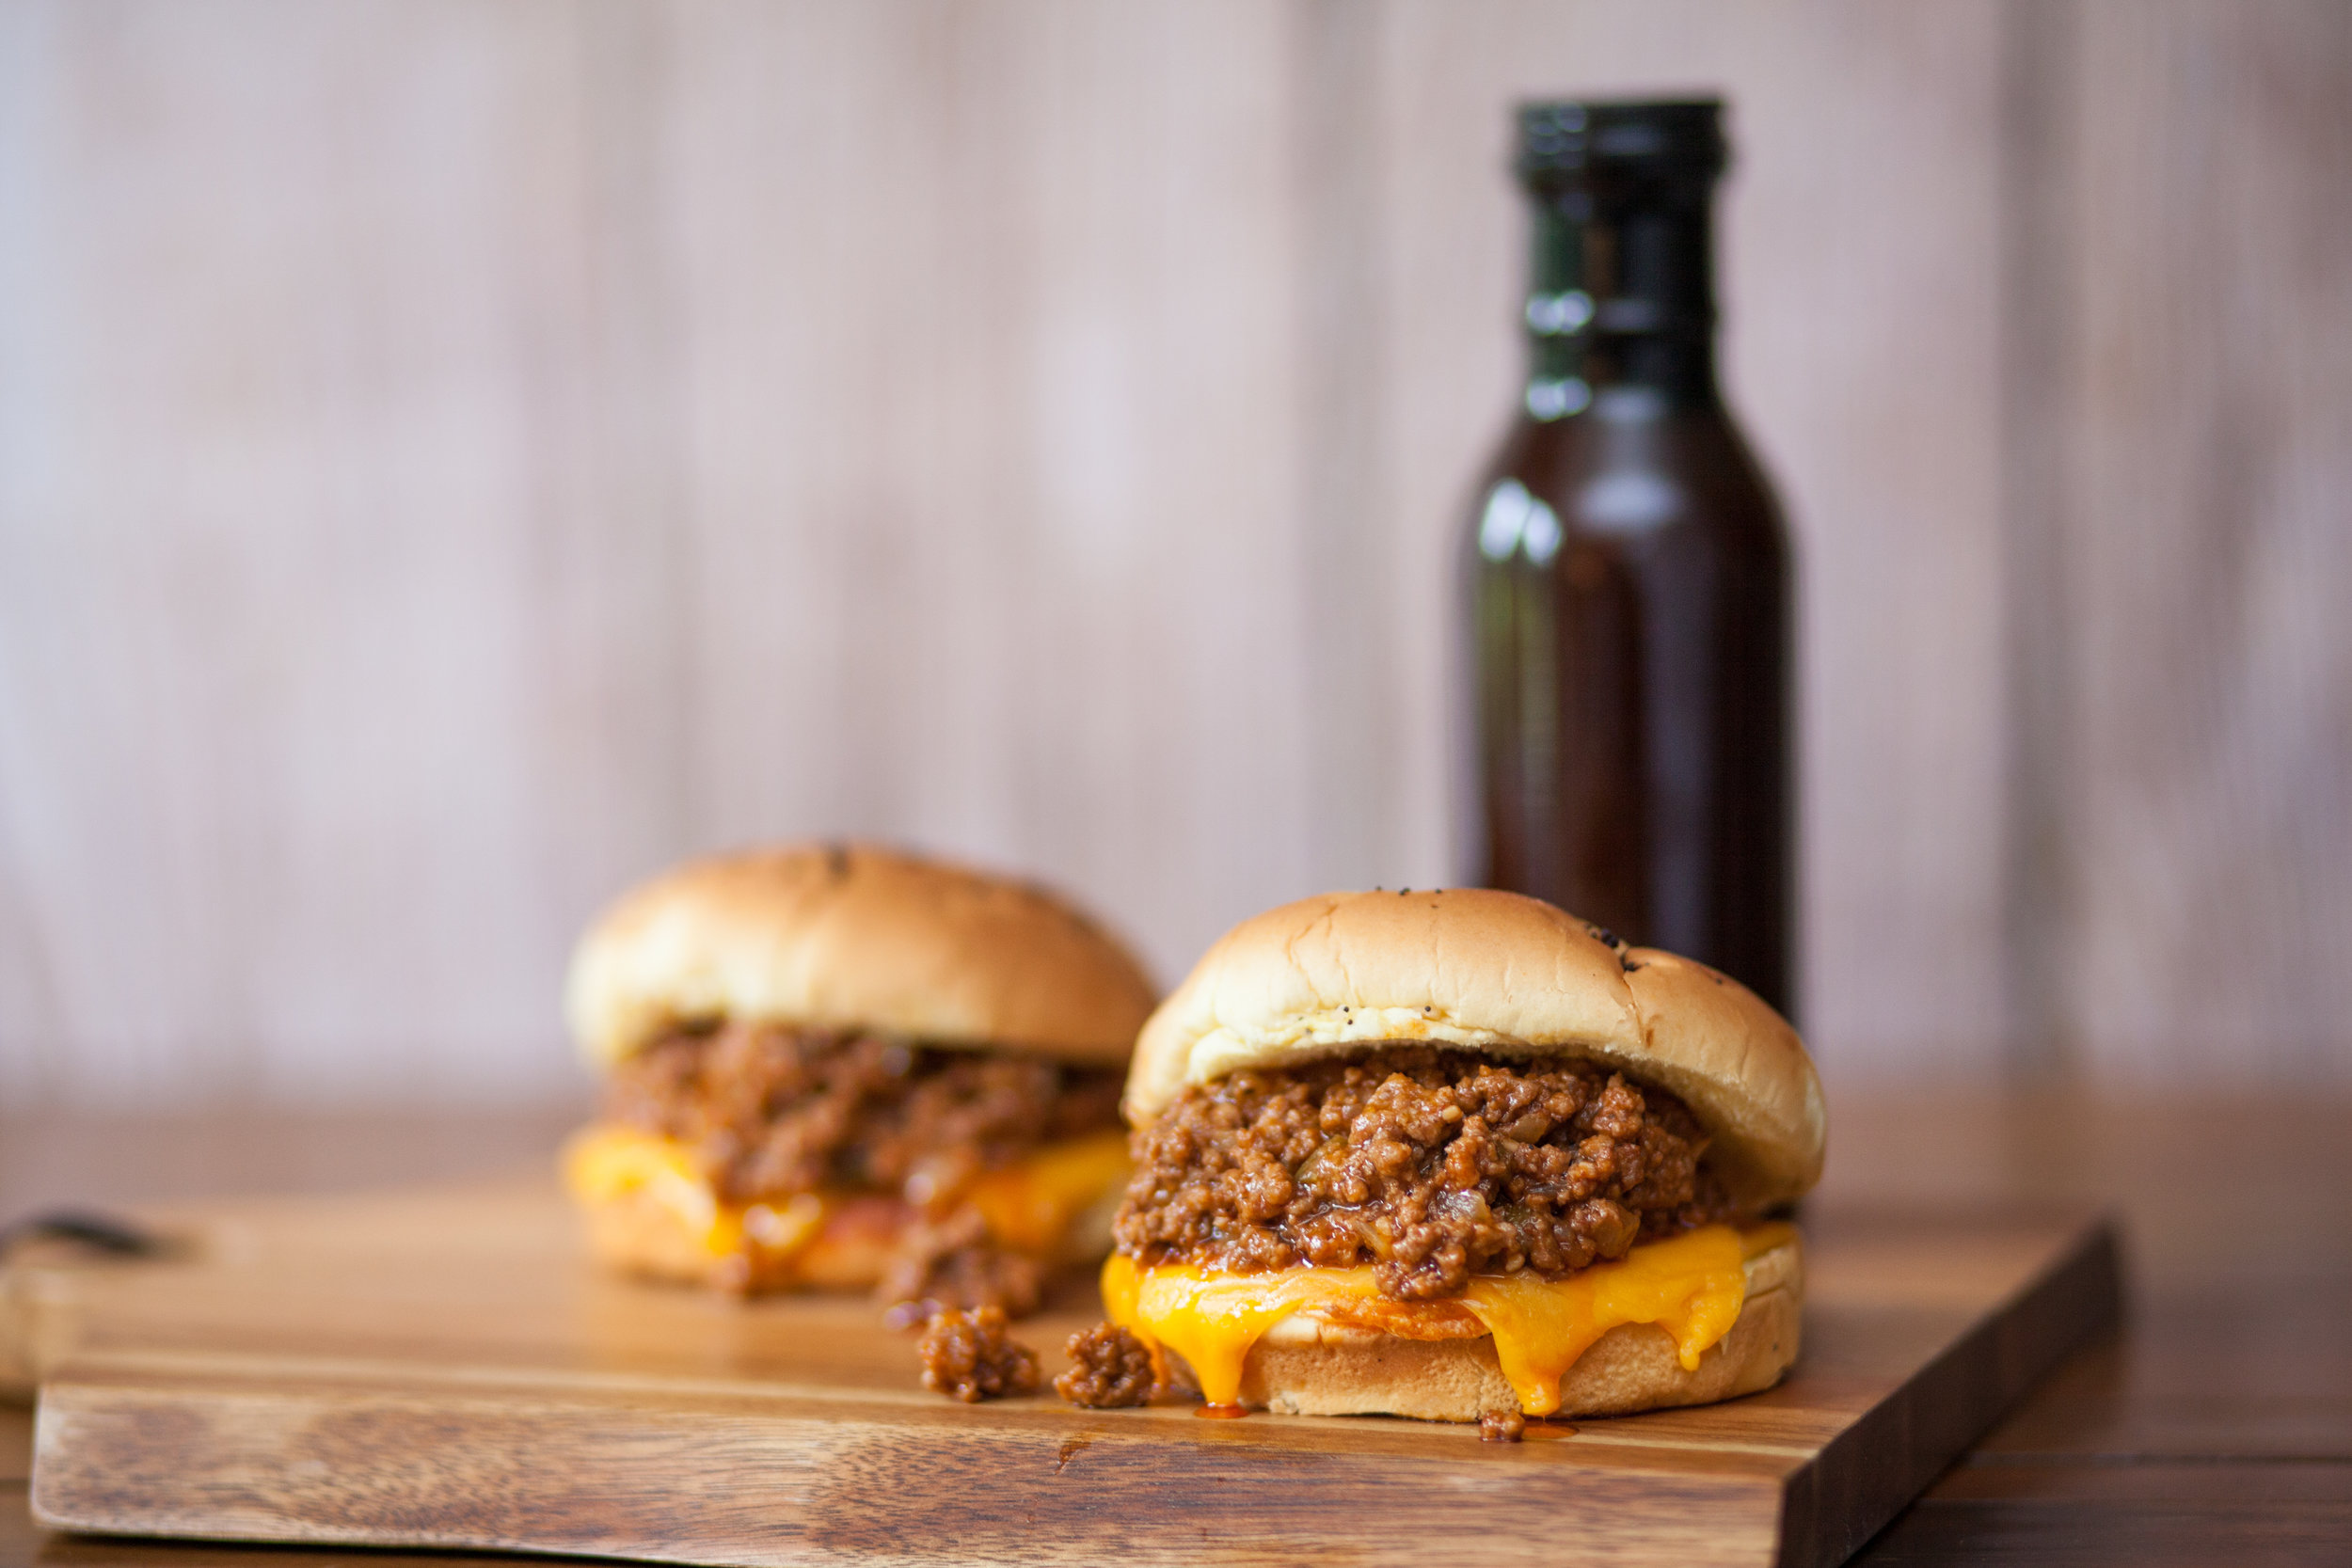 6. Jalapeño Sloppy Joes - They're cheesy, spicy, portable, and use our Deli Onion Buns. What more could you ask for, while cheering on your favorite team with your friends?